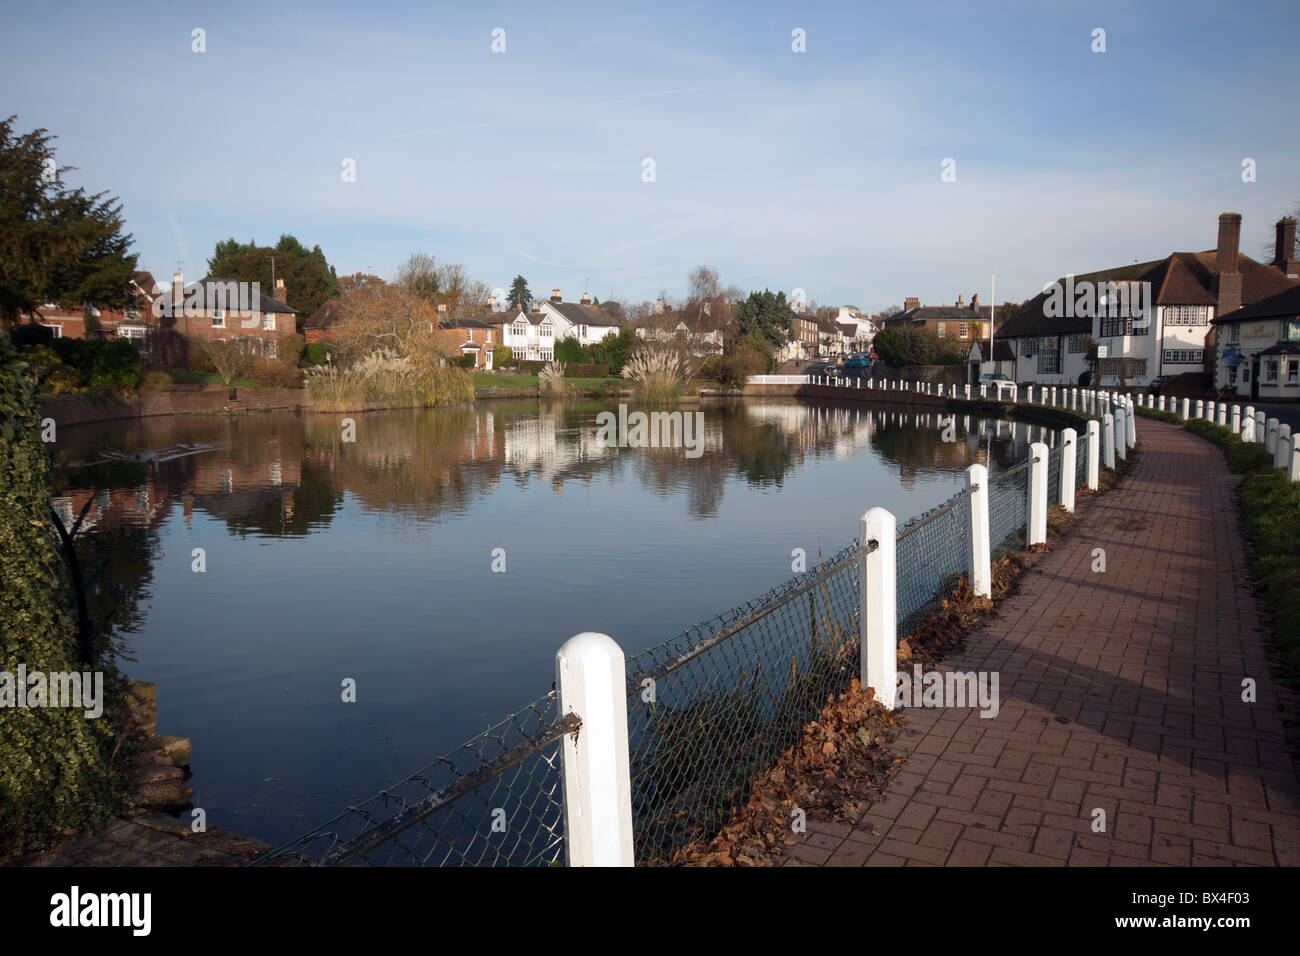 Typical English village scene with pond - Lindfield in West Sussex - Stock Image